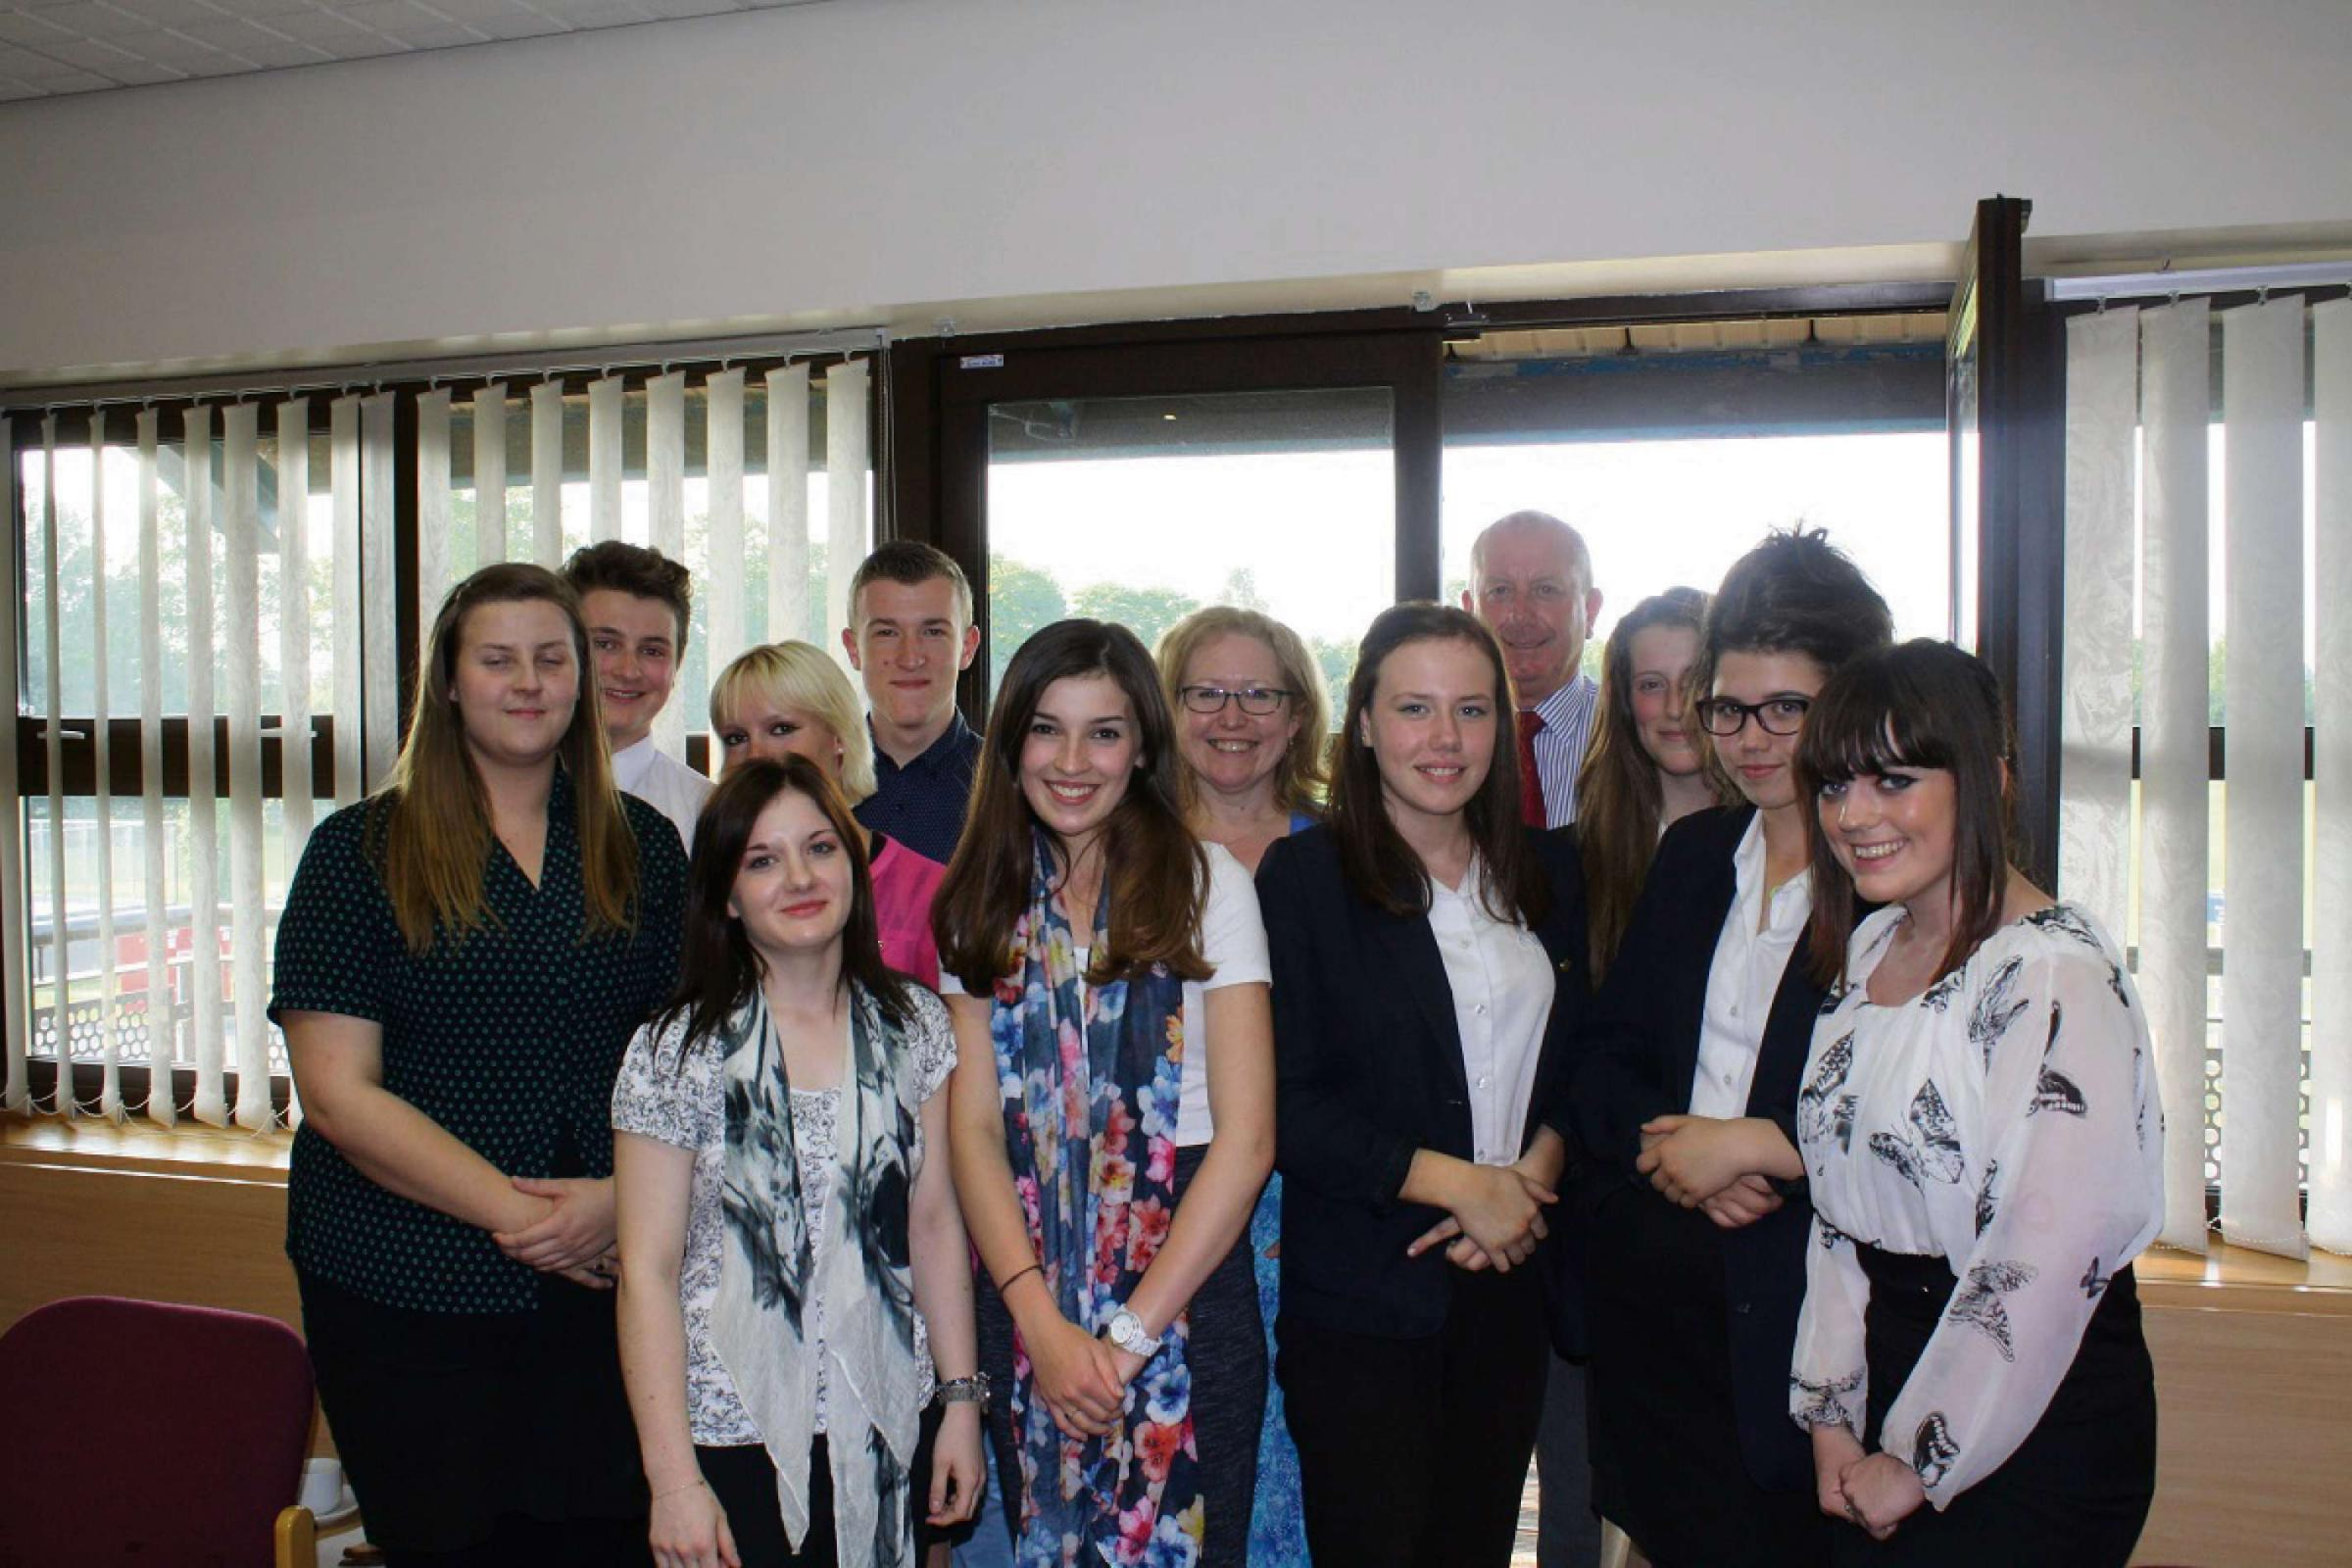 Members of Worcestershire Health and Care NHS Trust's youth board celebrate their first anniversary with chief executive Sarah